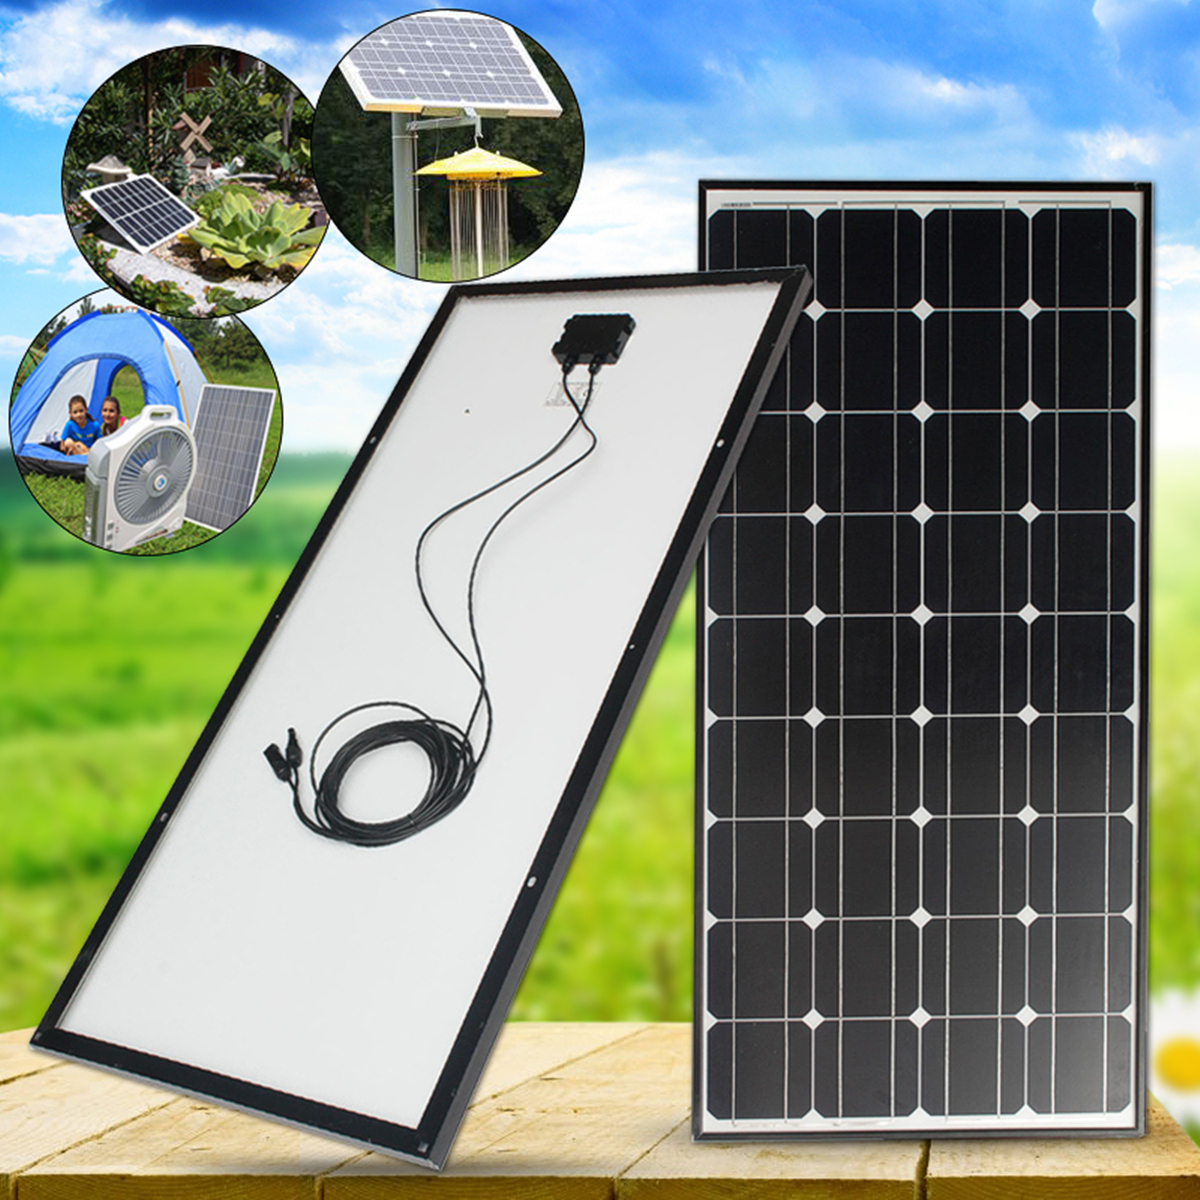 LEORY 100W Solar Panel 18V 100W Solar Charger For Car Battery 12V Battery Charger Monocrystalline Cells Module Kit leory 12v 4 5w solar panel portable monocrystalline solar cells power charger diy module battery system for car automobile boat